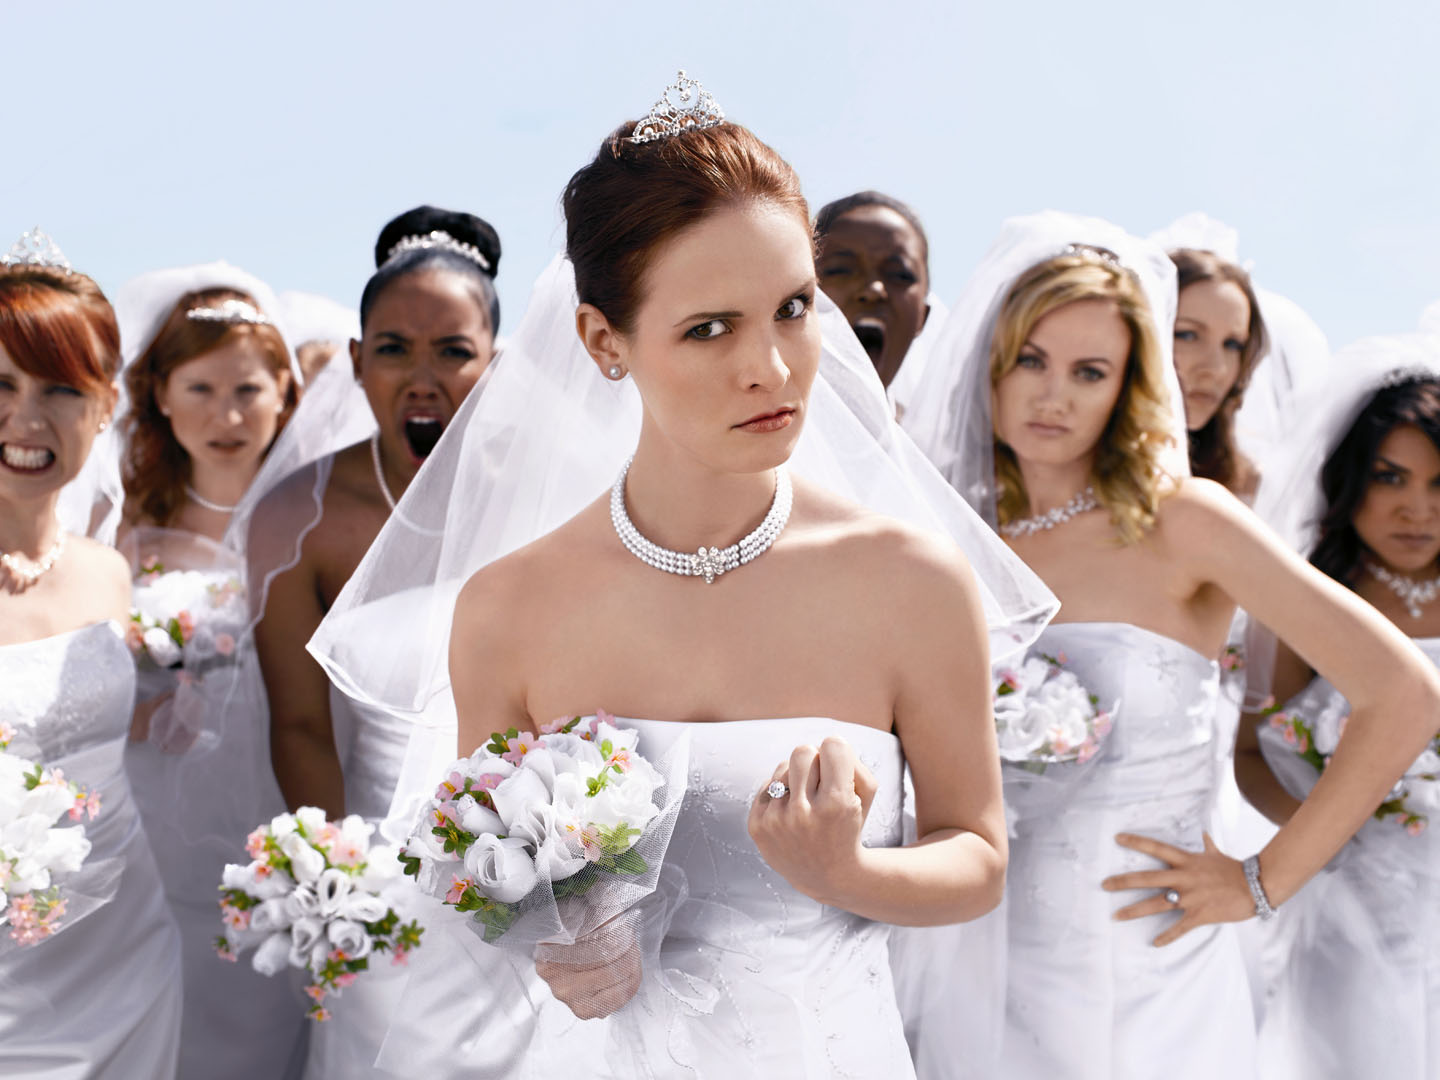 Ungrateful Brides: A shocking truth!